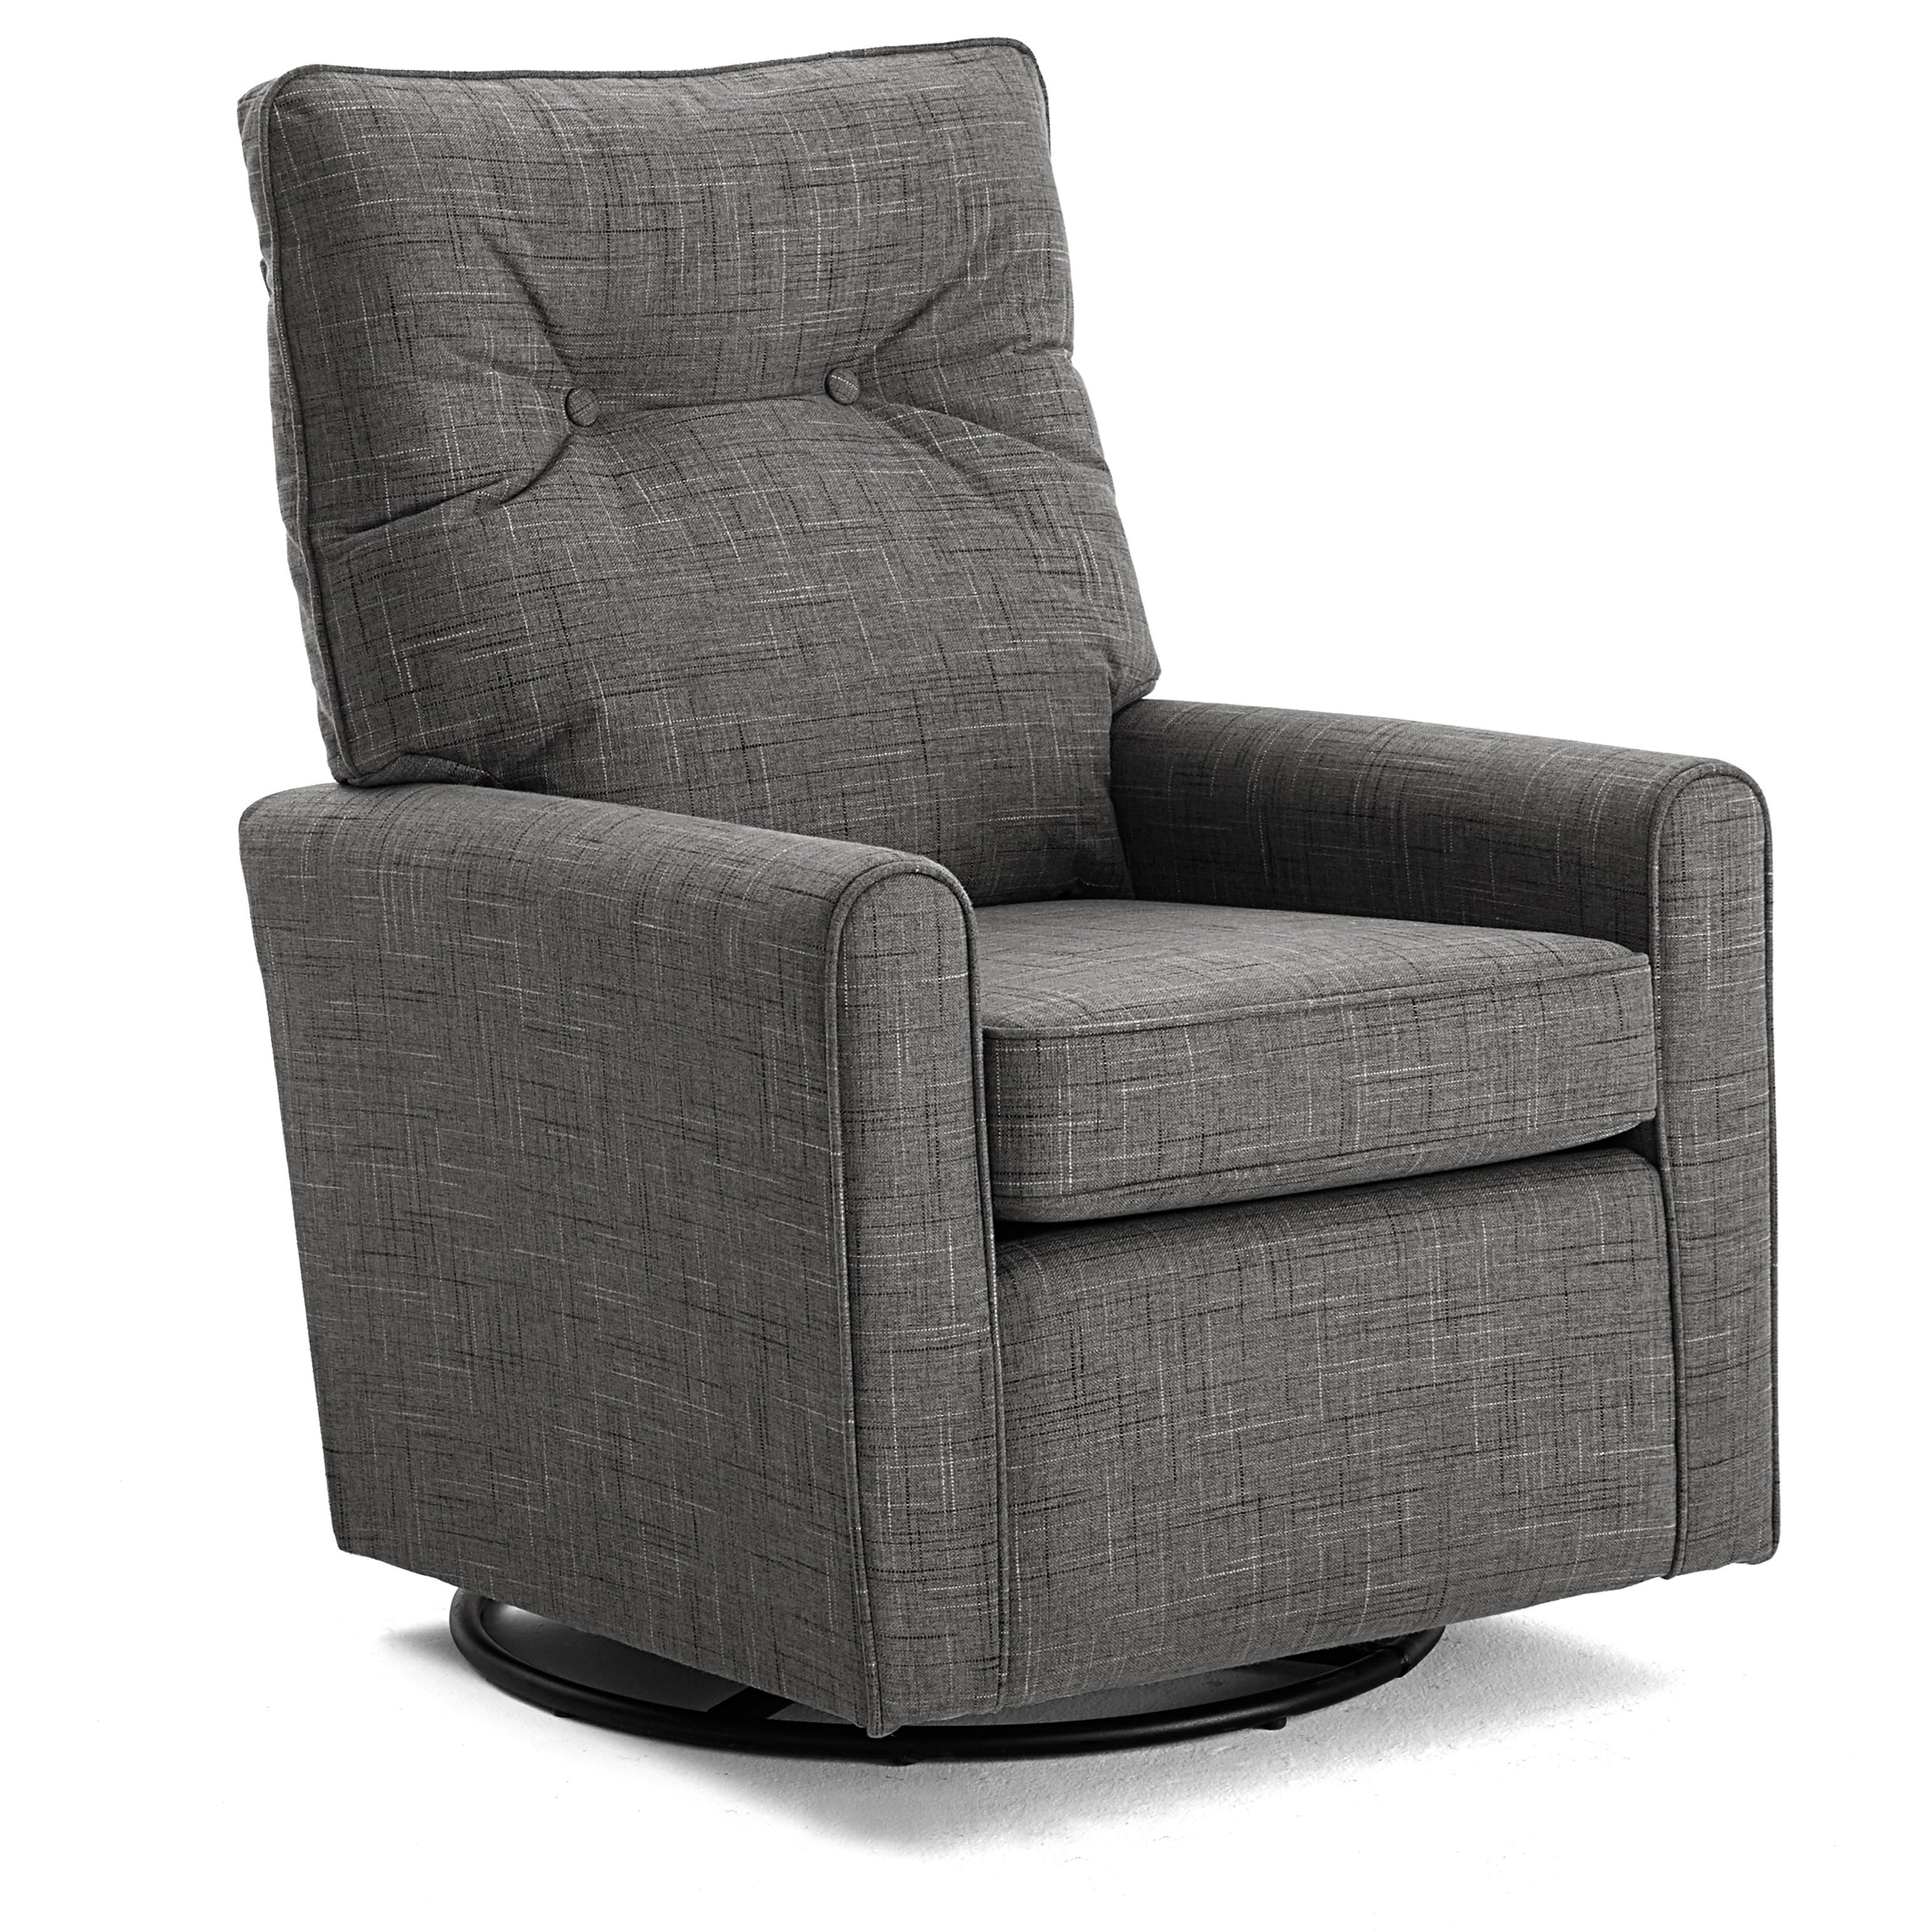 Best Home Furnishings Best Xpress Phylicia 4007 Small